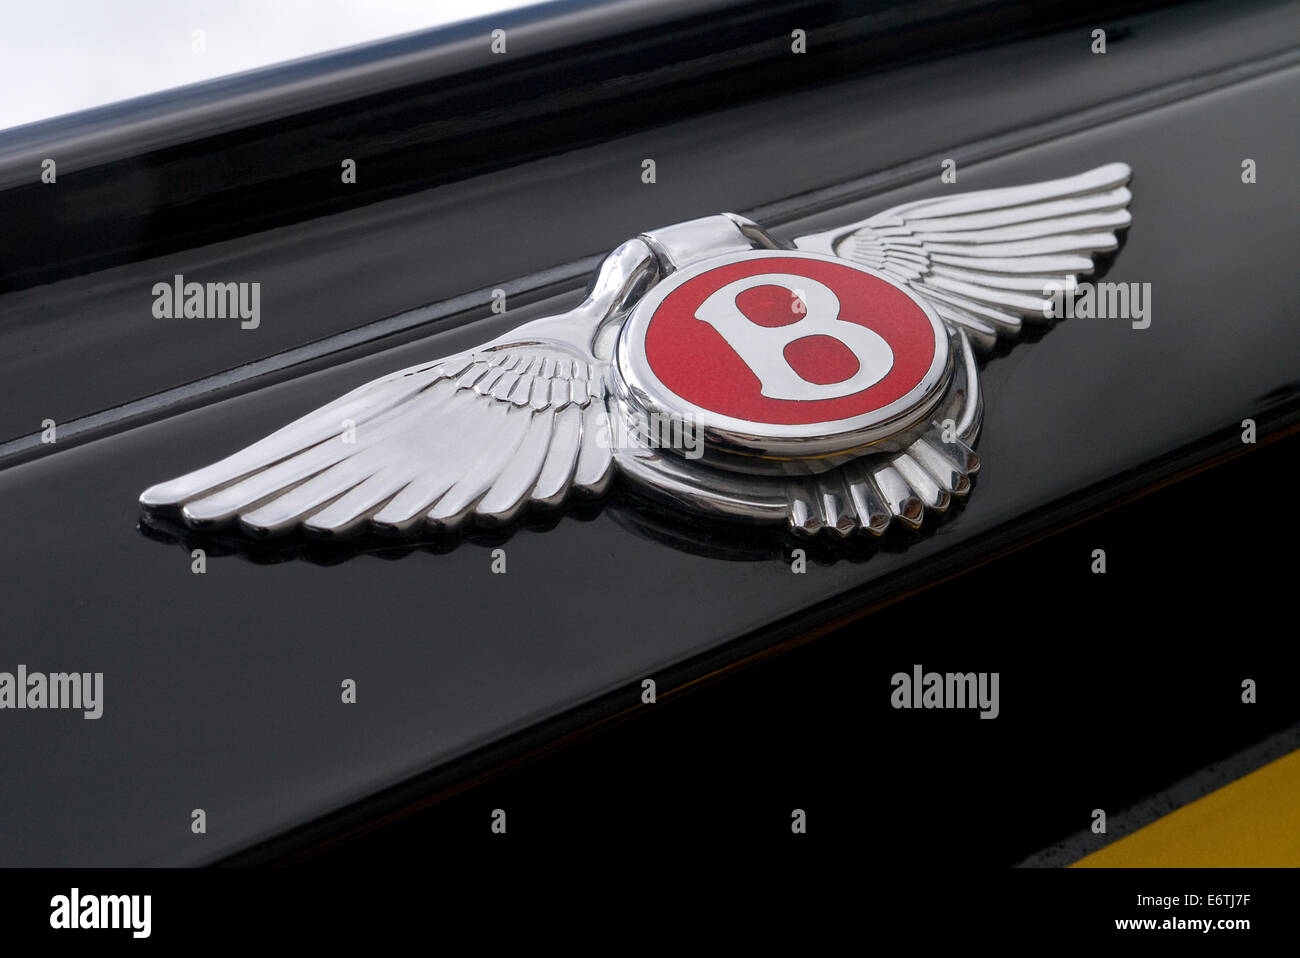 Bentley Continental SC 1999 Stockbild